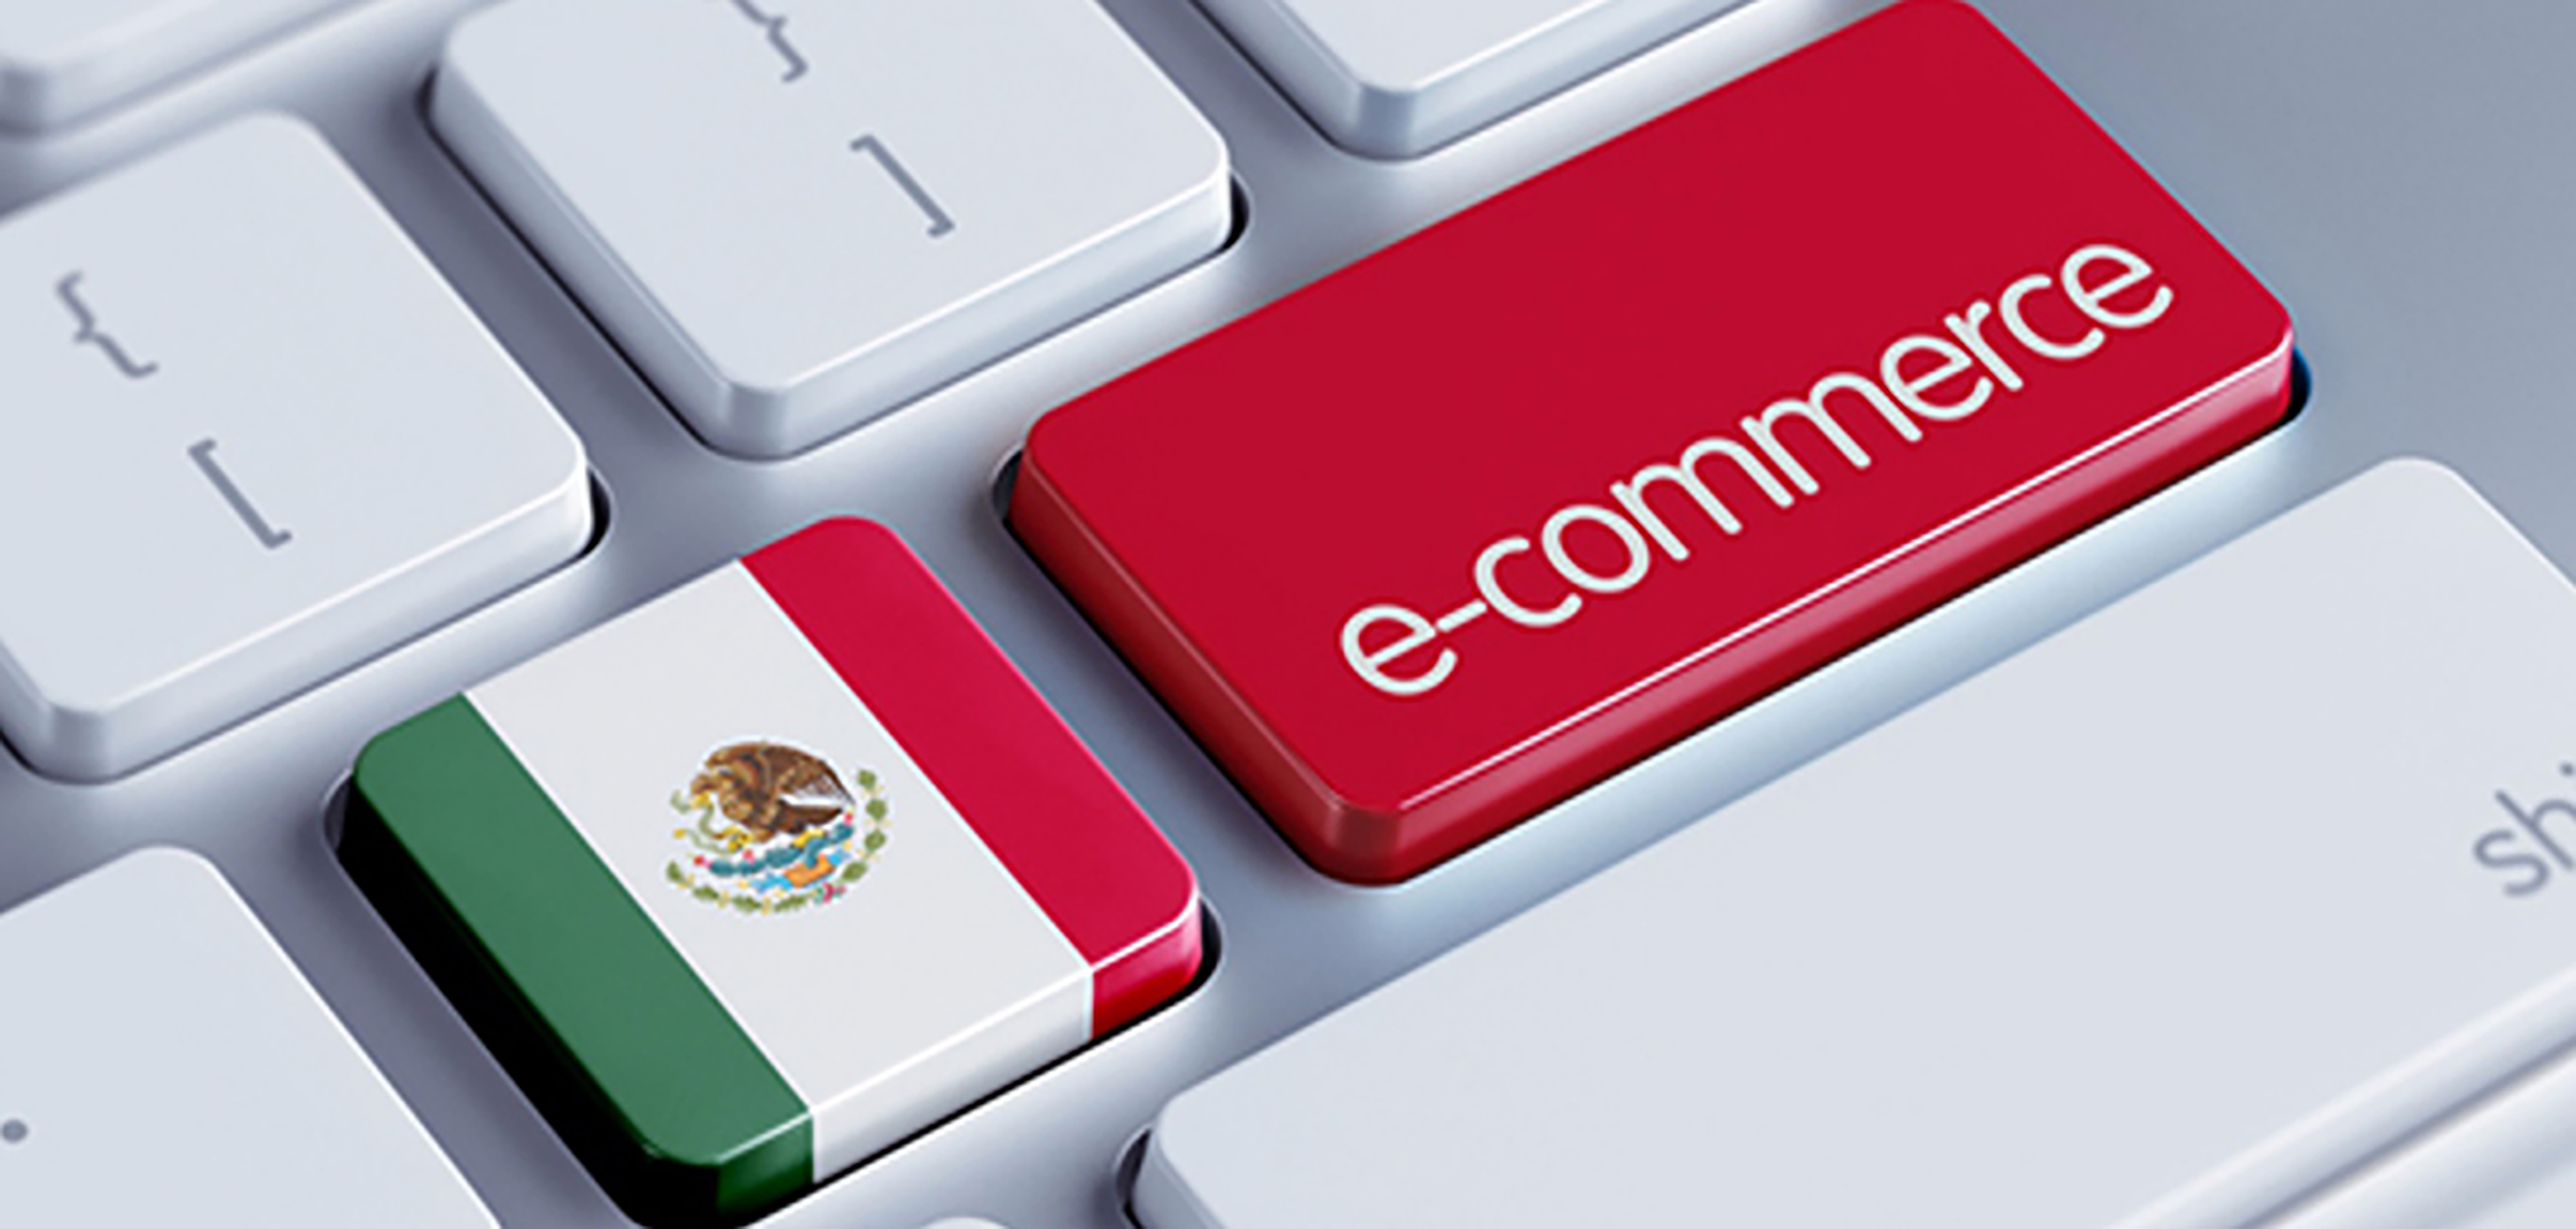 4 retos del e-commerce que México debe superar